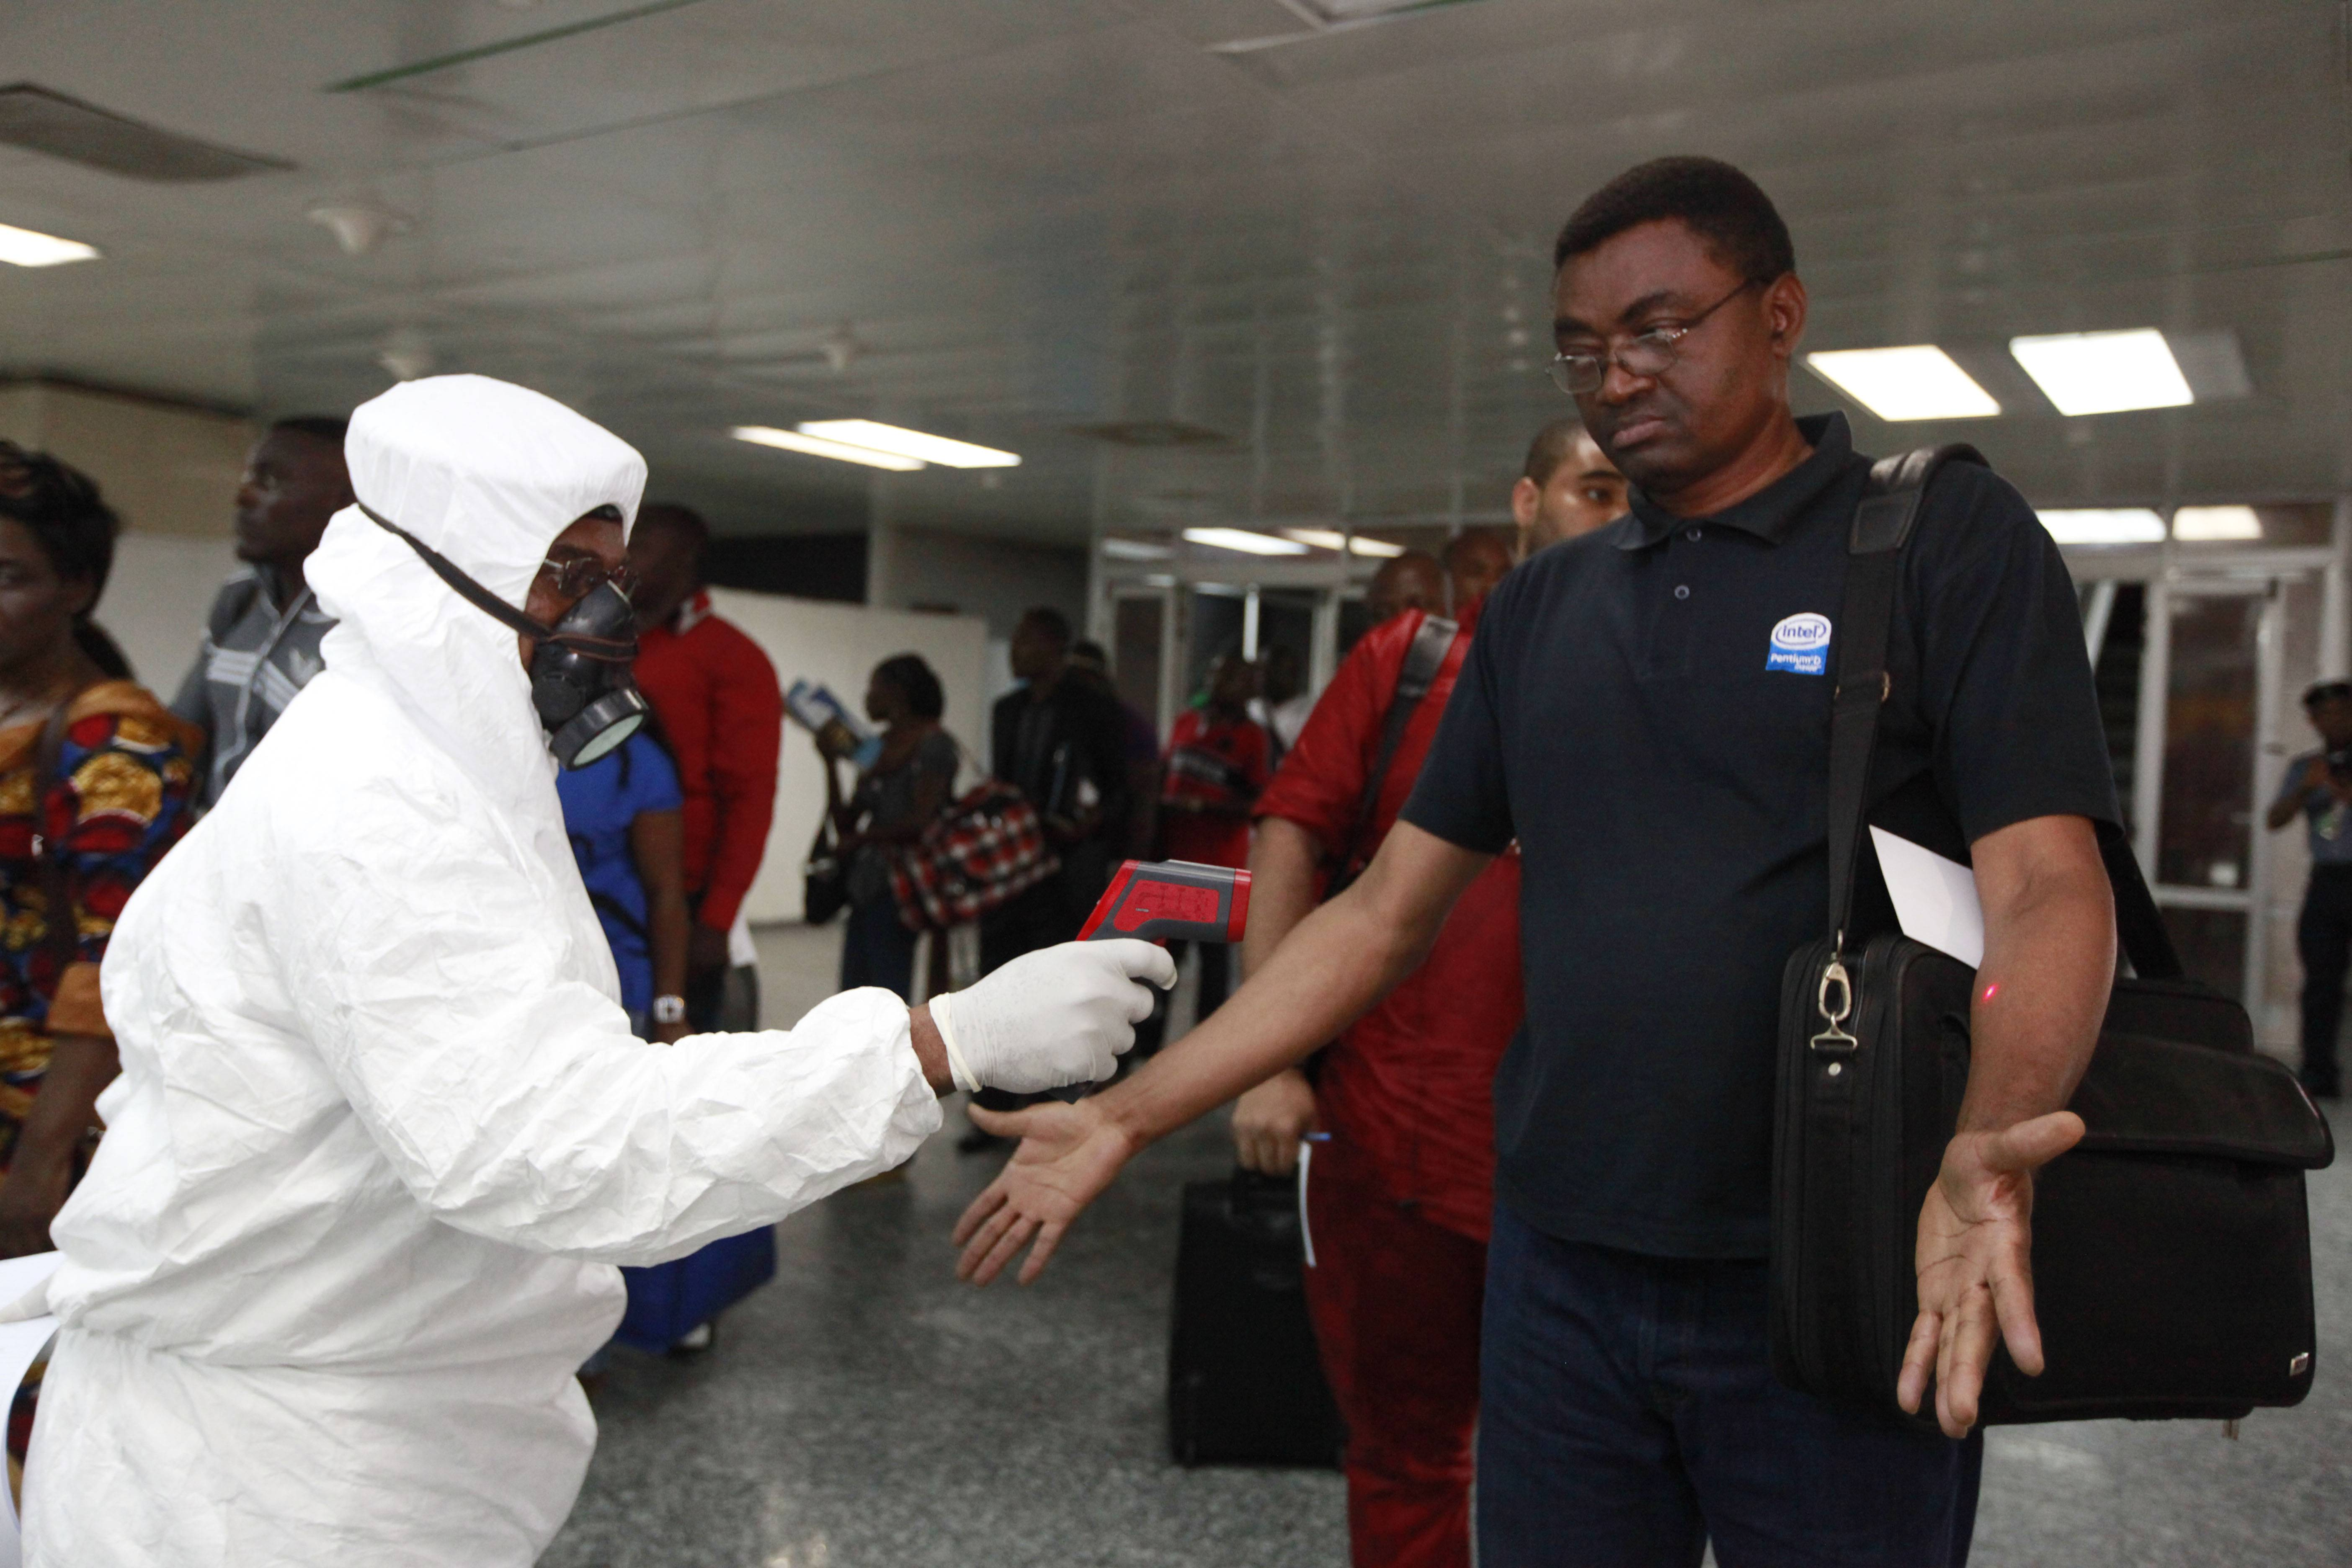 A Nigerian port health official uses a thermometer on a passenger Wednesday at the arrivals hall of Murtala Muhammed International Airport in Lagos, Nigeria. A Nigerian nurse who treated a man with Ebola is now dead and five others are sick with one of the world's most virulent diseases, authorities said Wednesday as the death toll rose to at least 932 people in four West African countries.